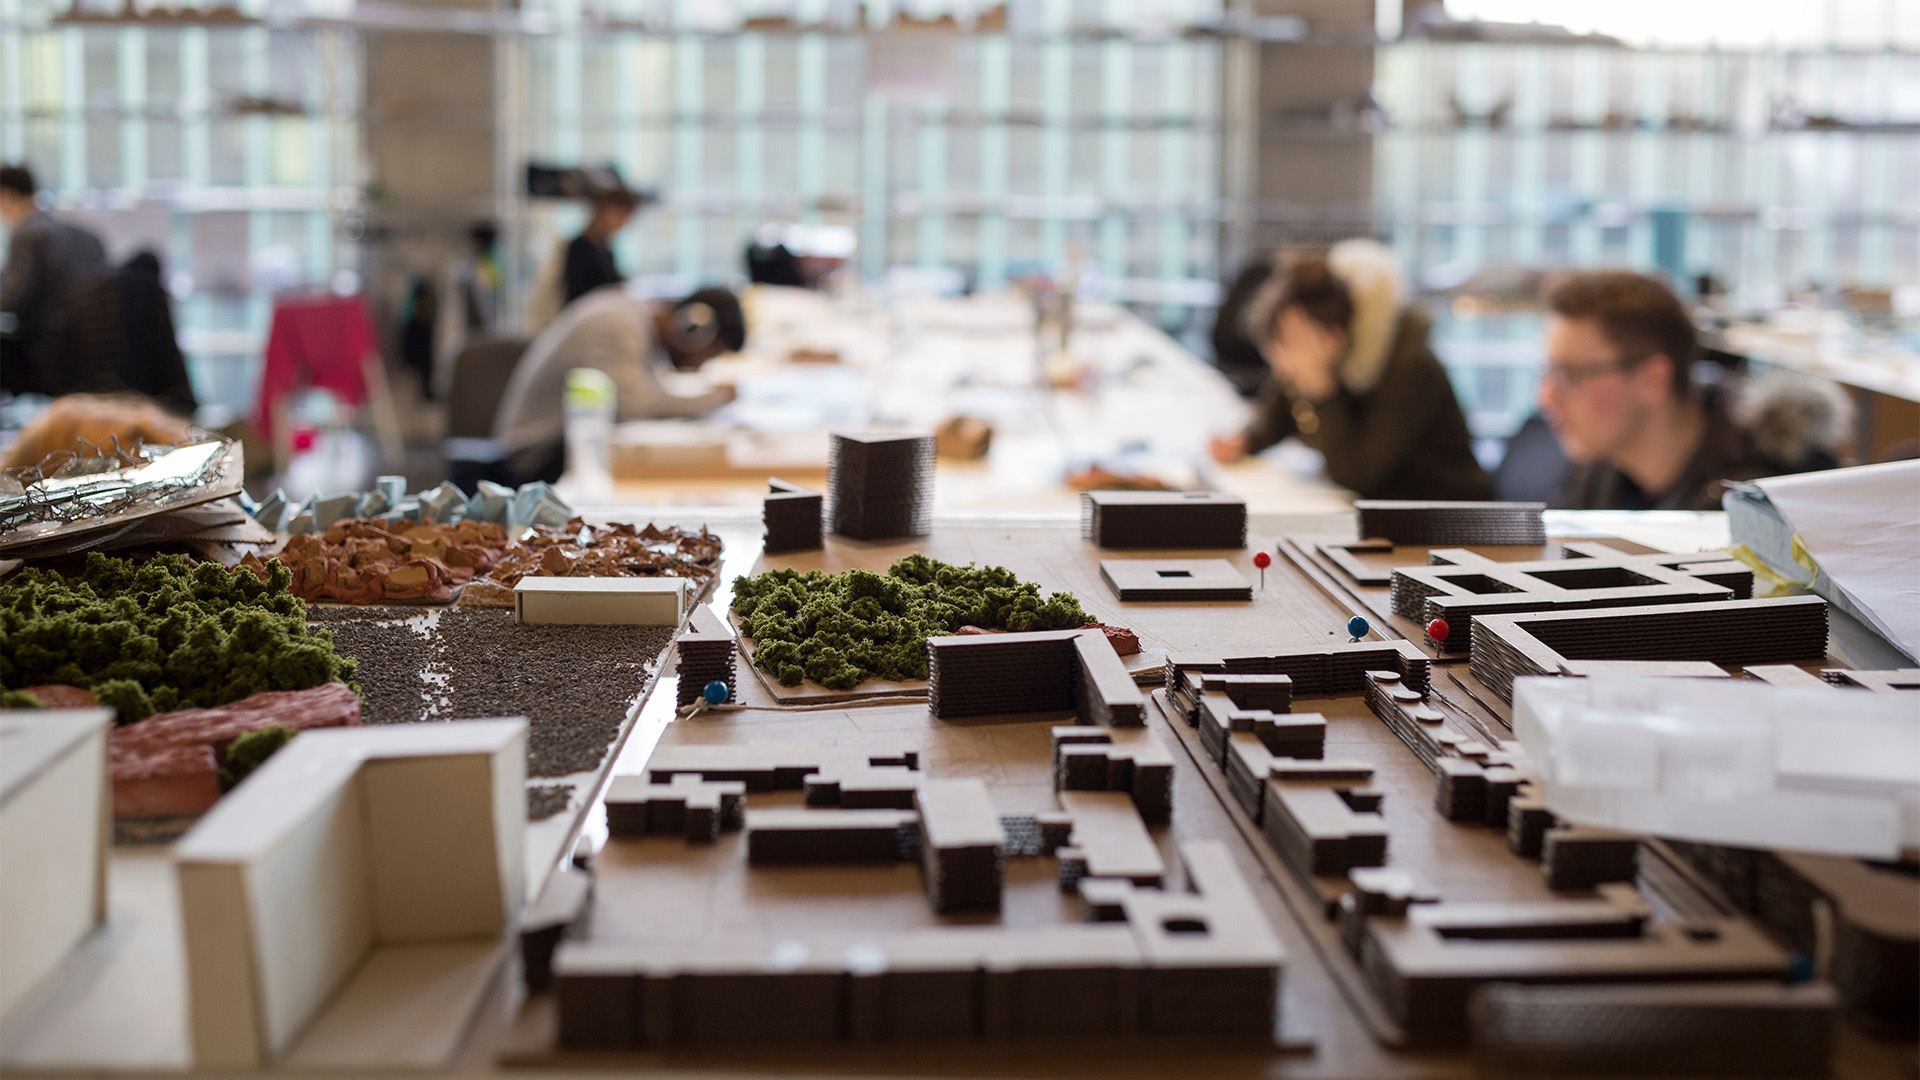 Close up of architectural model with students working in studio in background